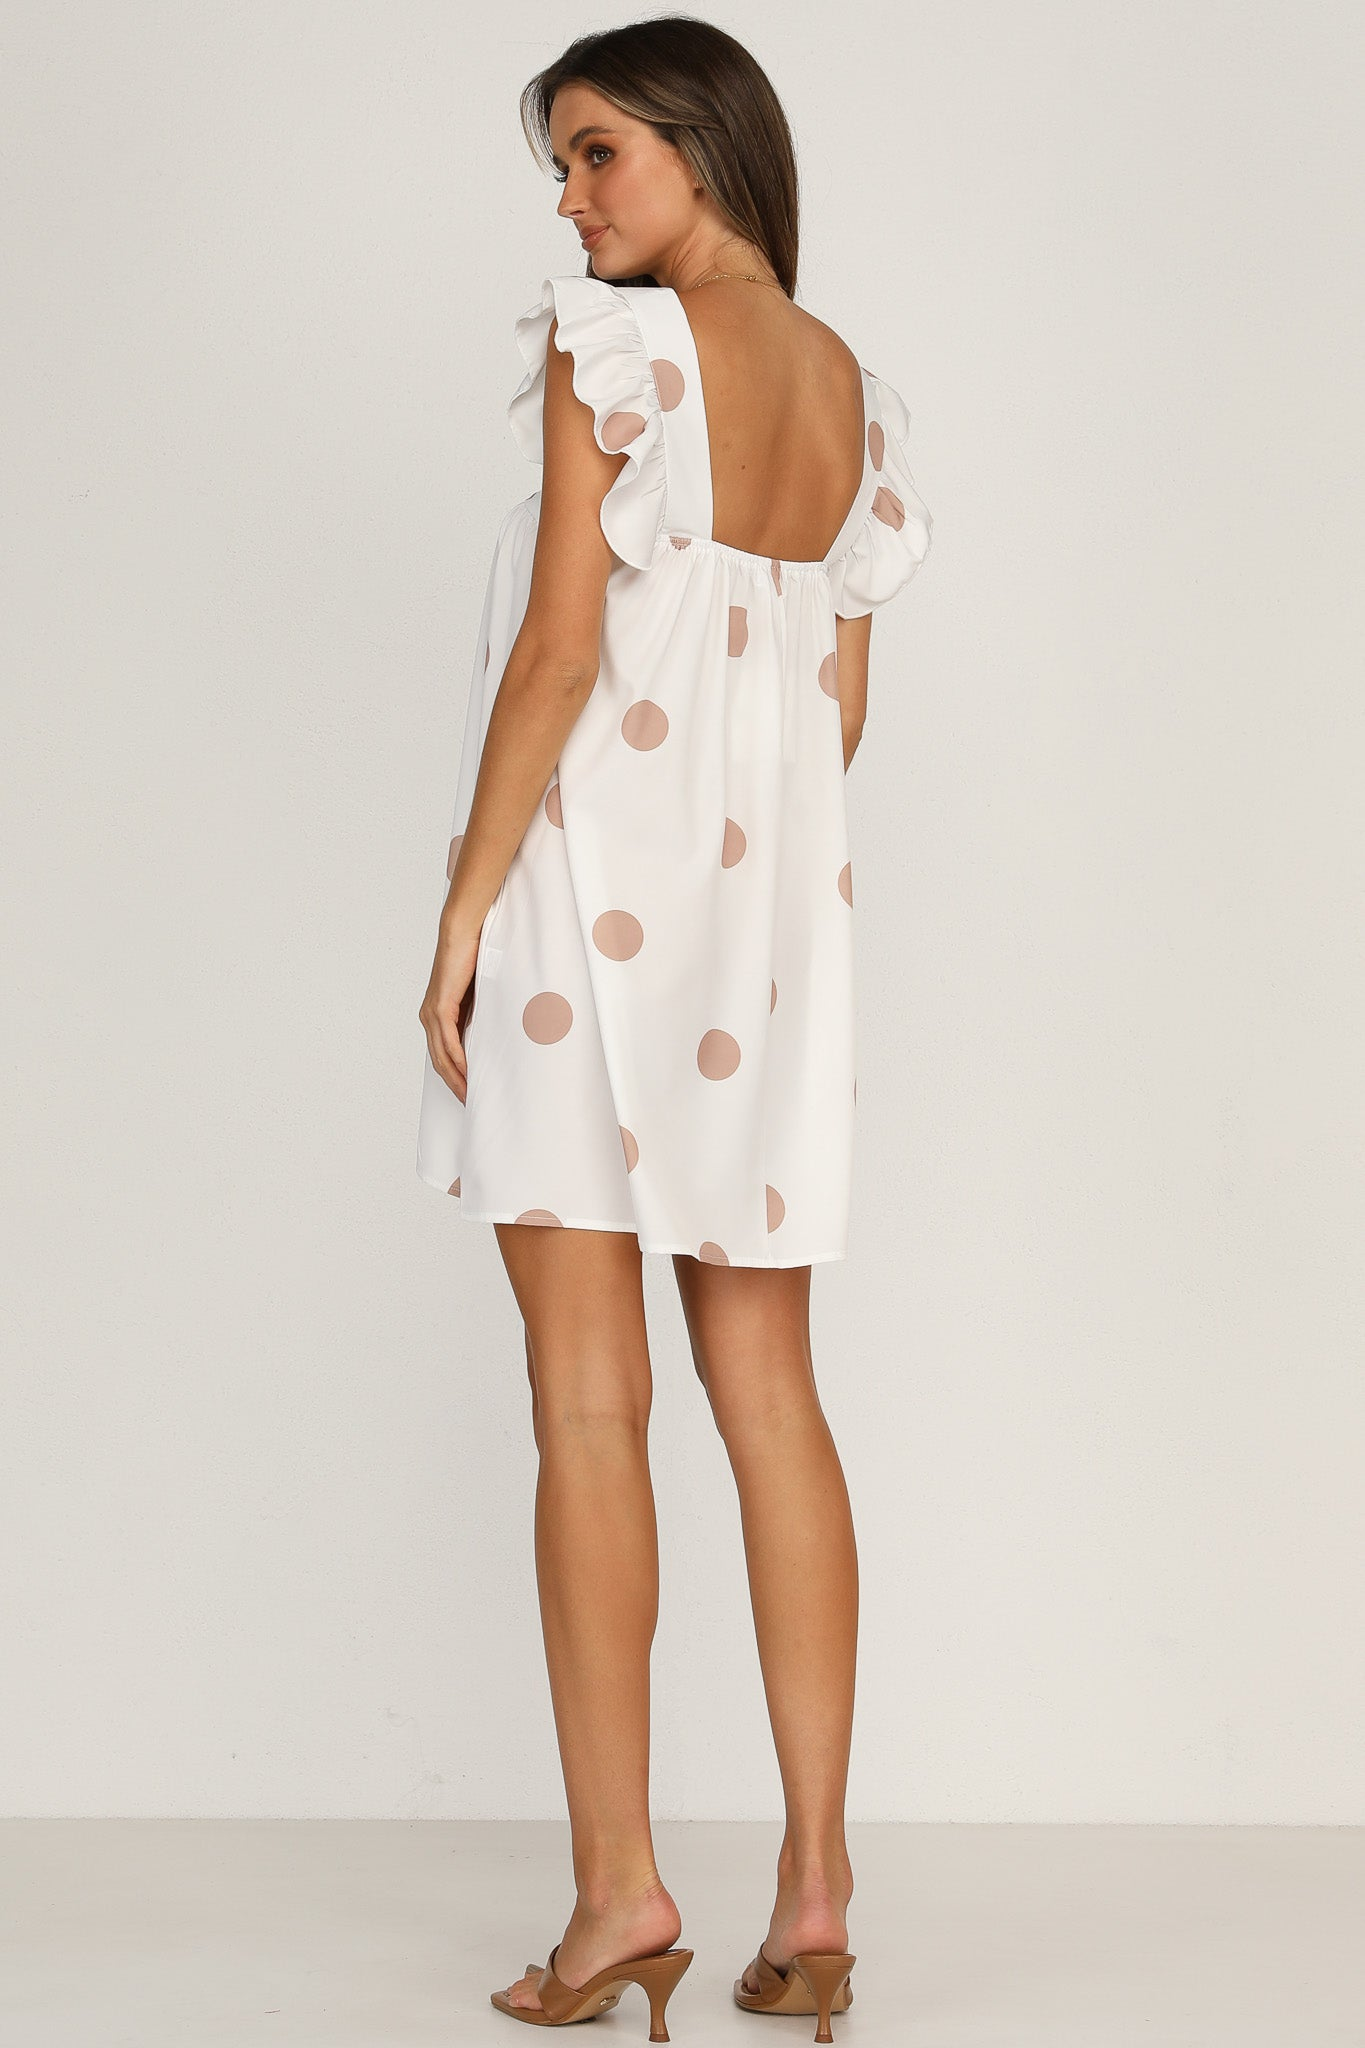 Poppy Dress (Polka-dot)